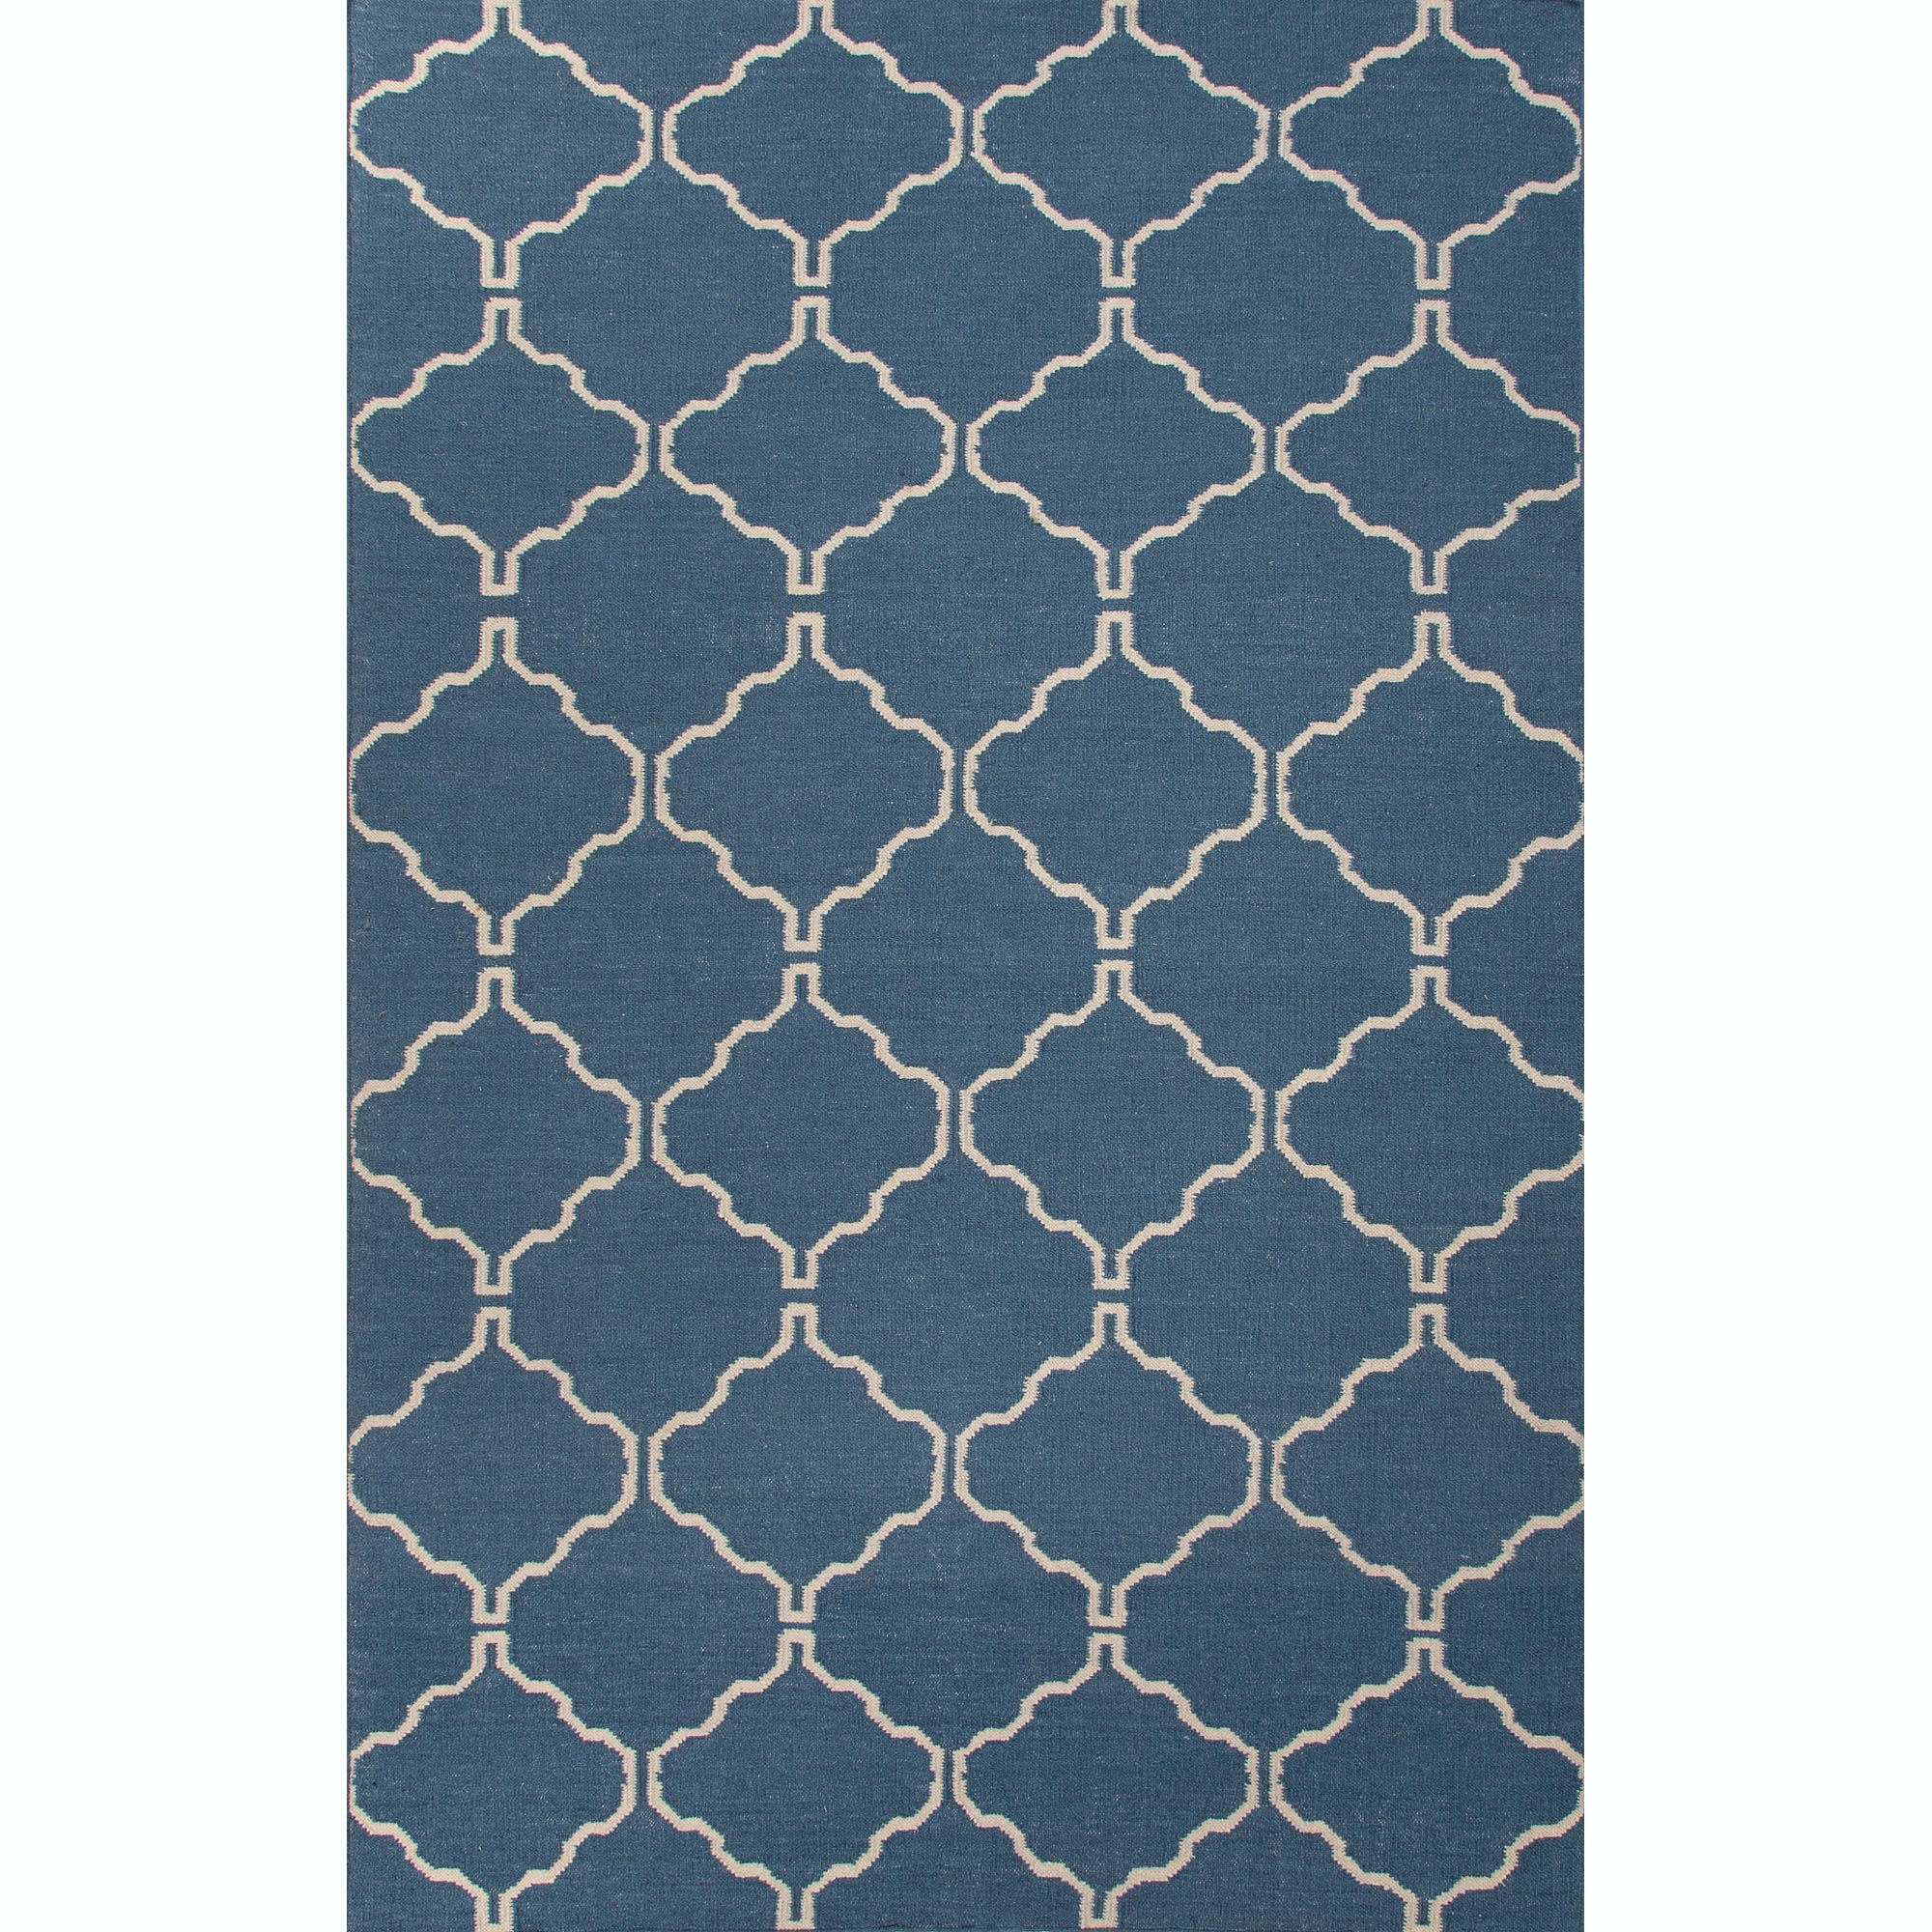 Jaipur Rugs Floor Coverings Flat Weave Moroccan Pattern Wool Blue